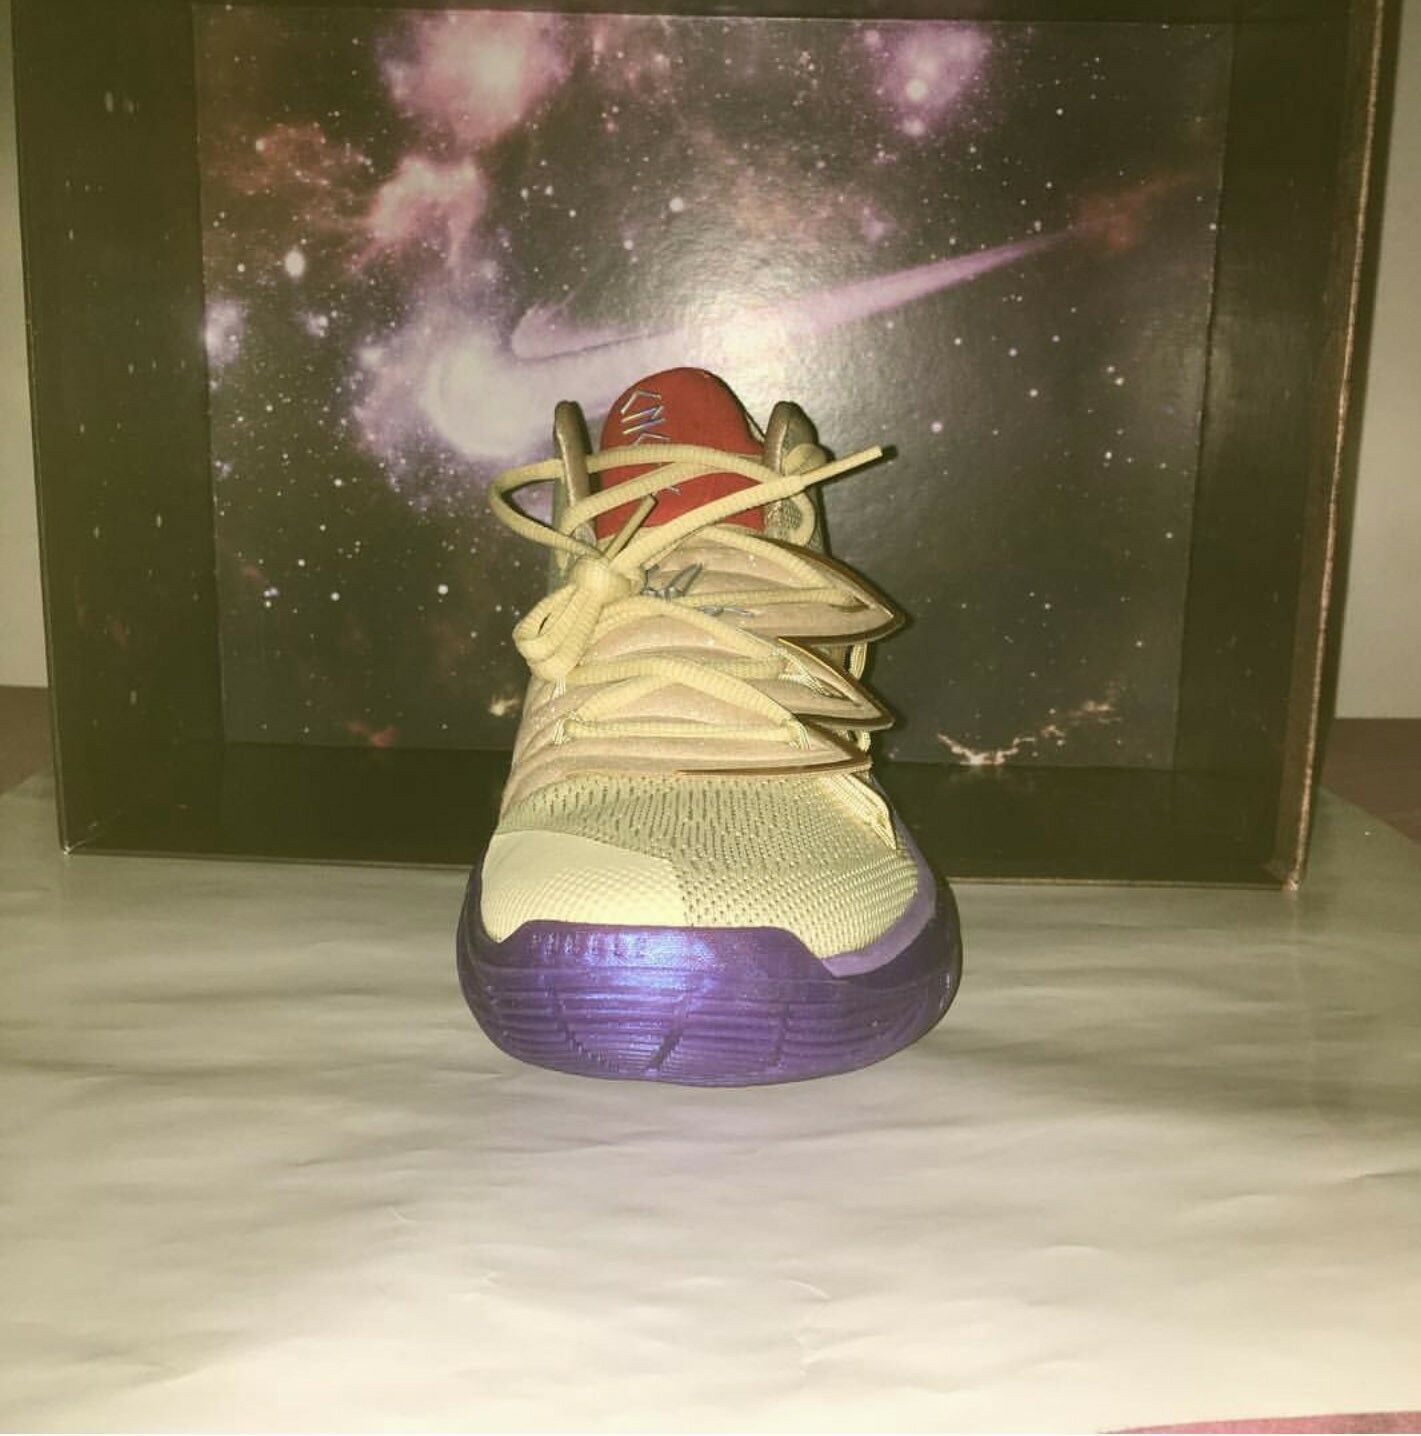 Nike kyrie 5 x cncpts (Special Box) Size 8.5